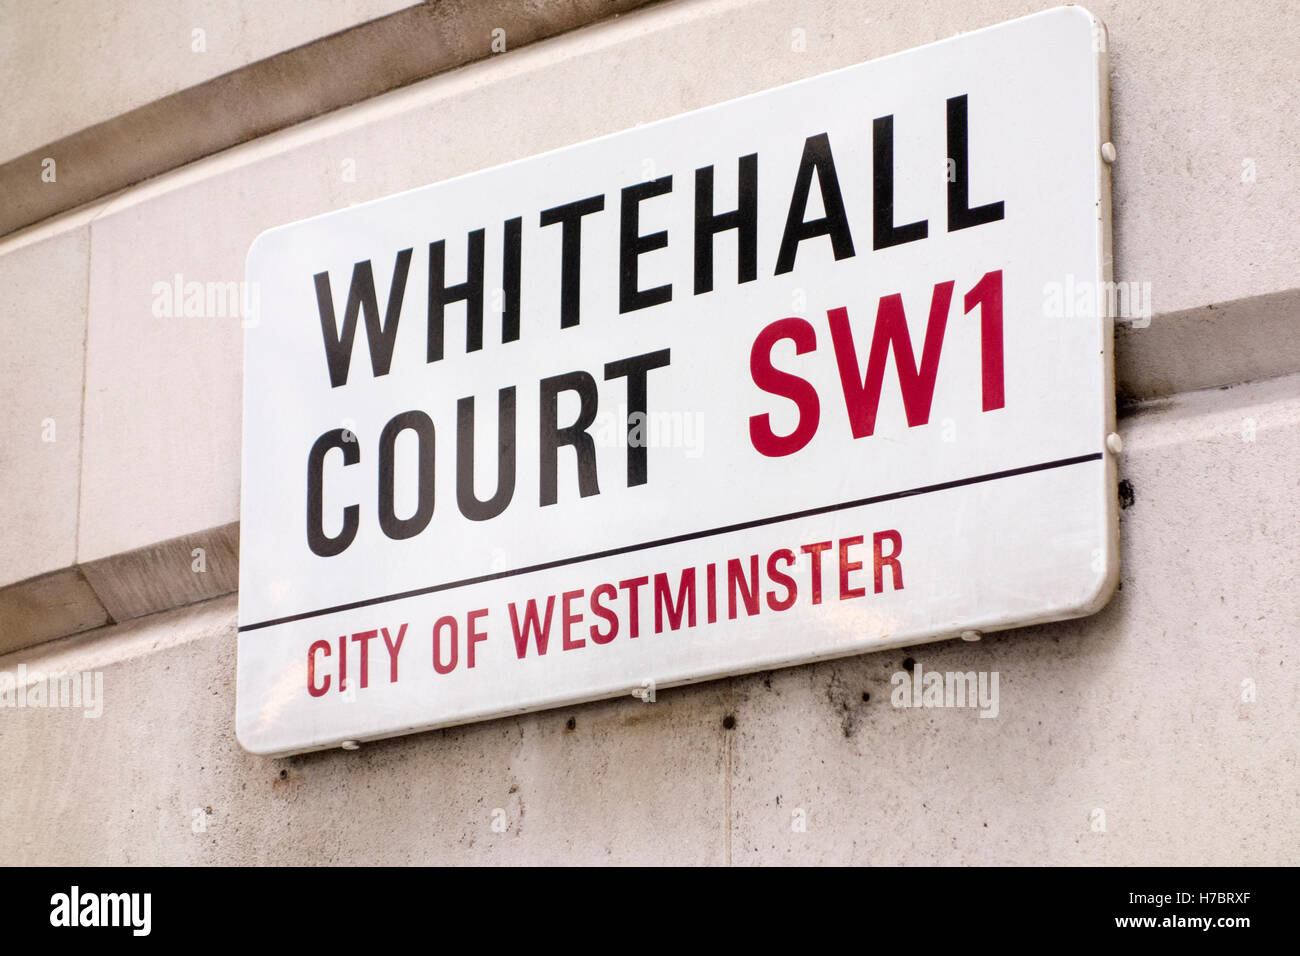 Whitehall Court road name sign, City of Westminster, London, UK - Stock Image